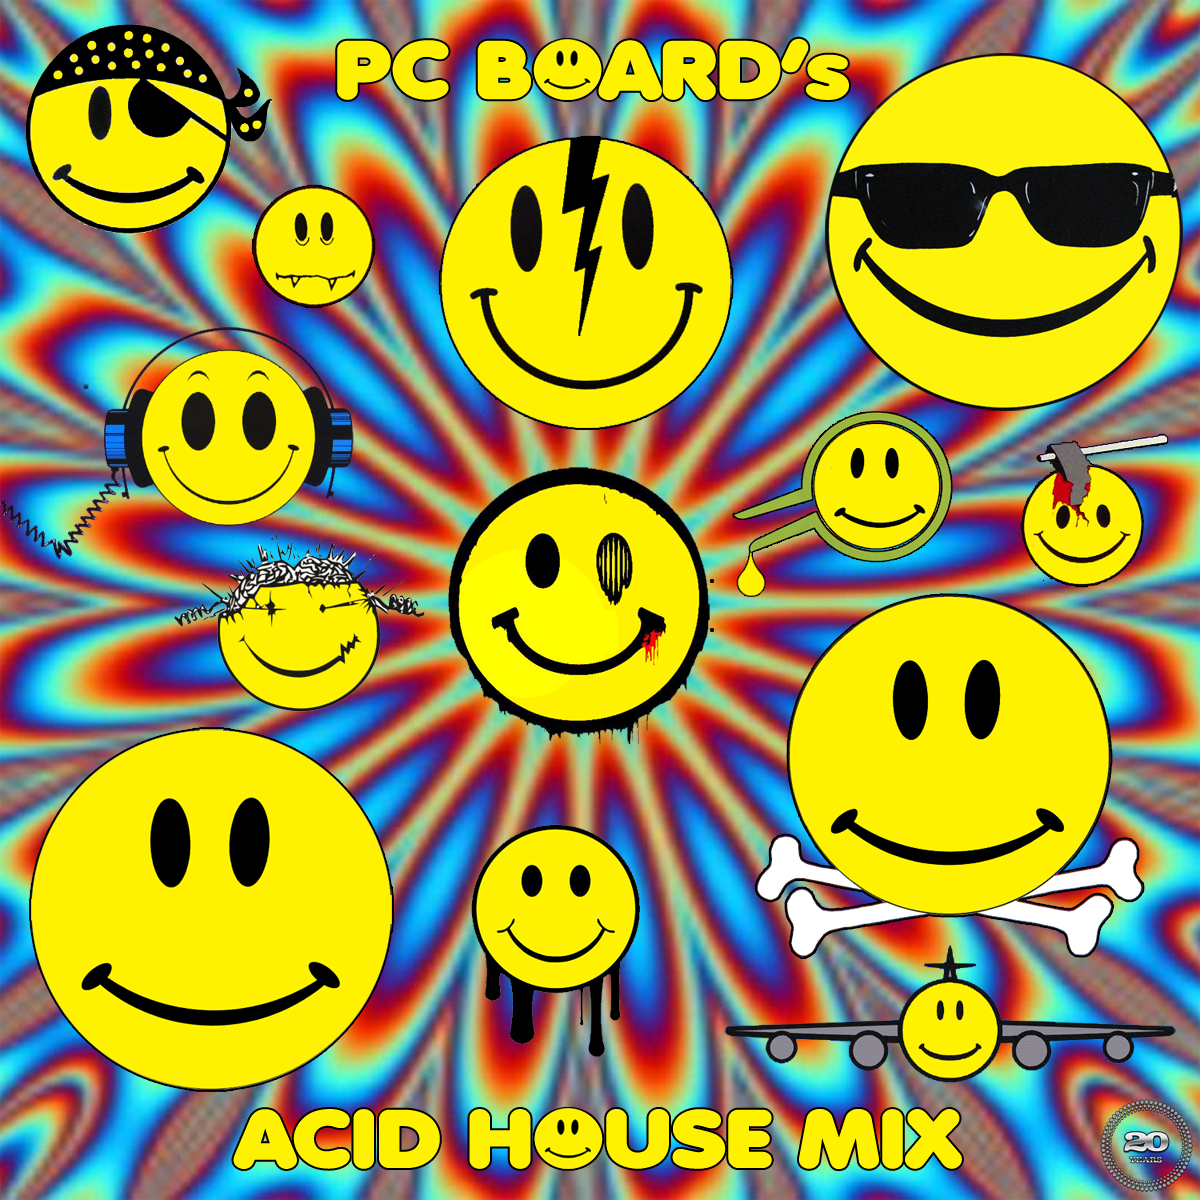 Acid house pictures posters news and videos on your for Old skool acid house